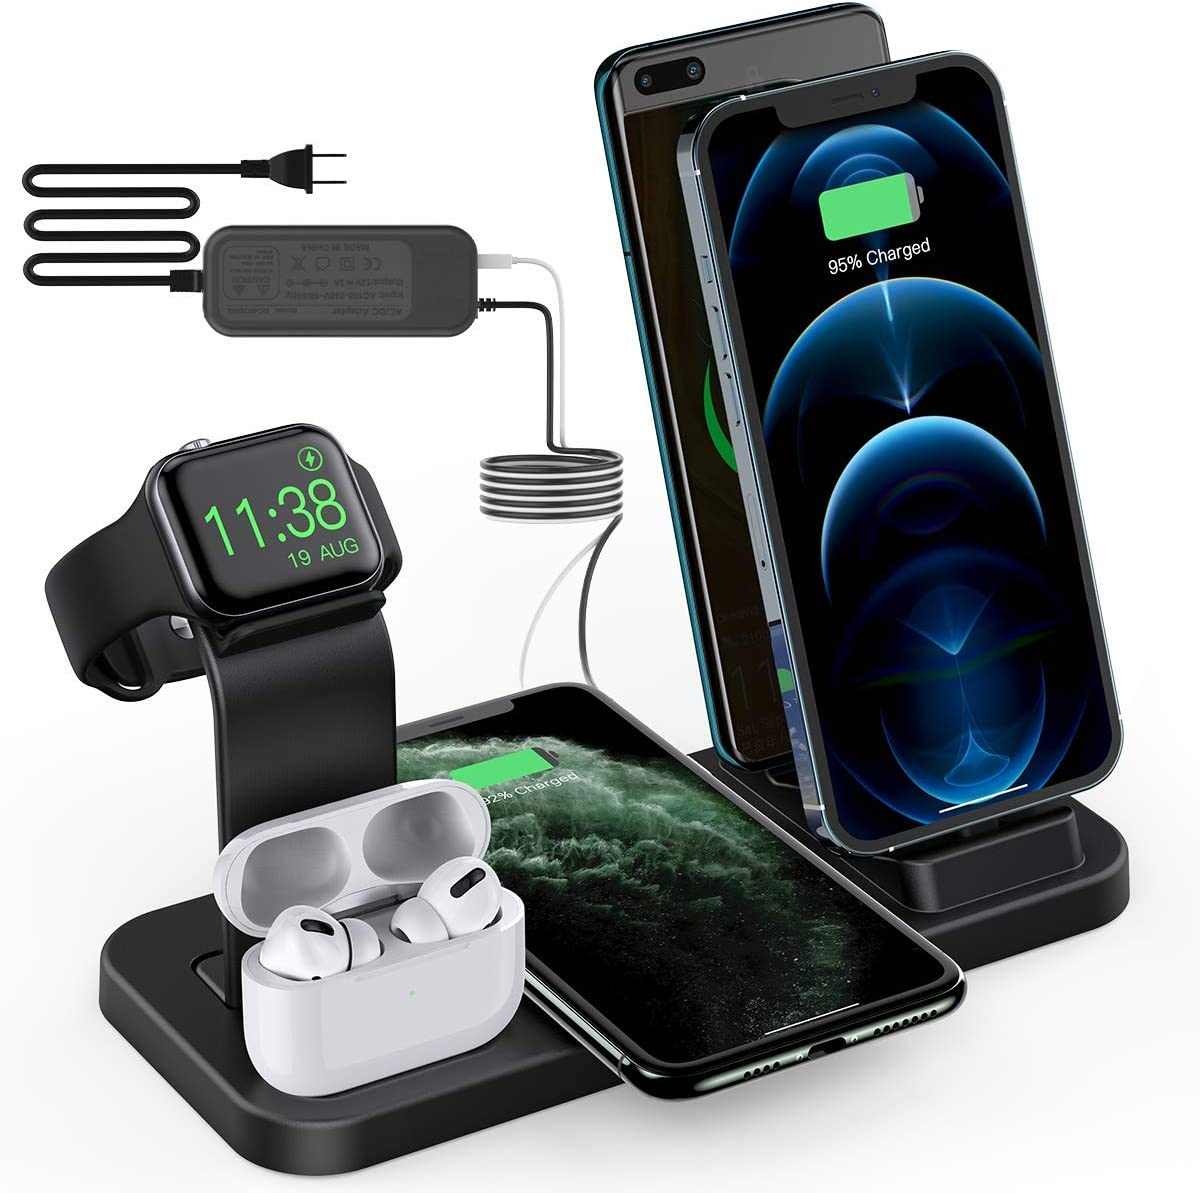 BeaSaf Wireless Charger,5 in 1 Wireless Charging Station for iPhone Samsung, USB C Dock Station for Android Phones, Charging Stand for Apple Watch Series 6 /SE/5/4/3/2/1 AirPods Pro 2 1 Black